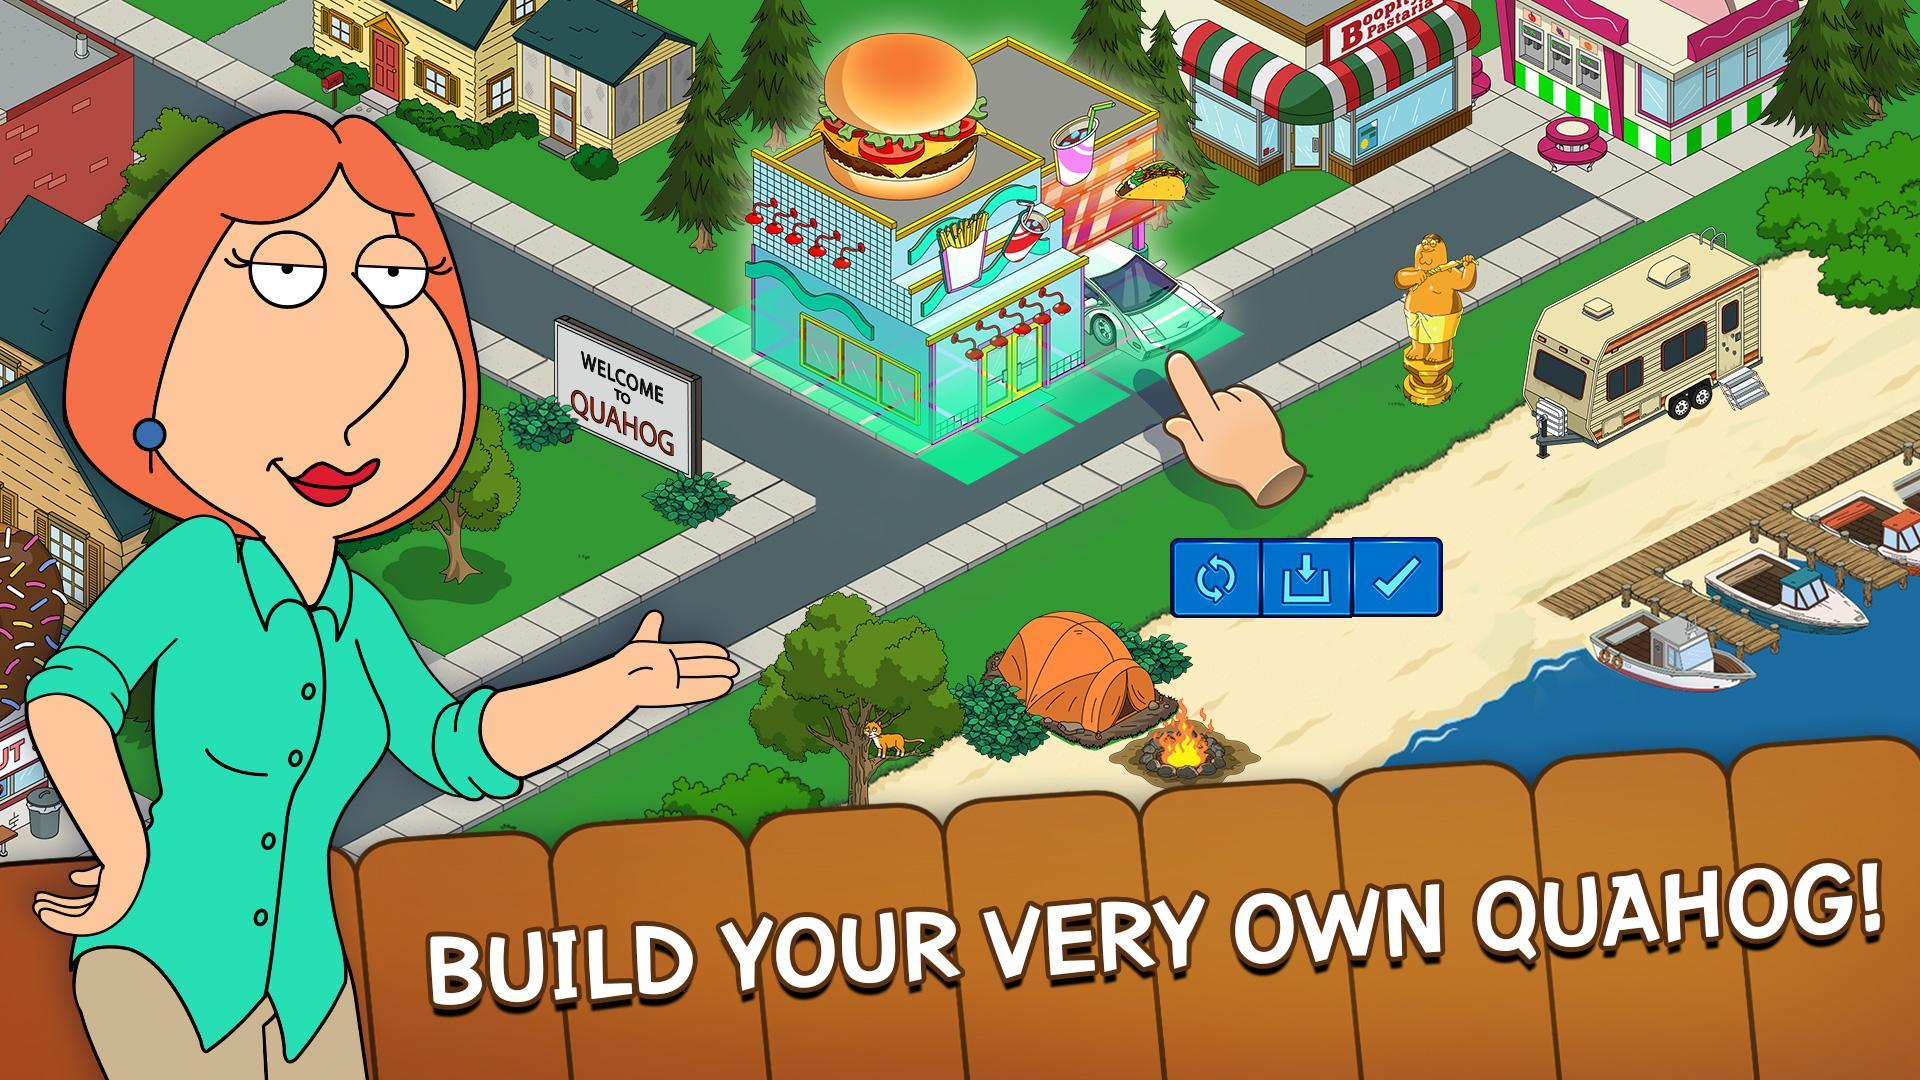 Family Guy The Quest for Stuff 3.8.1 Screenshot 3